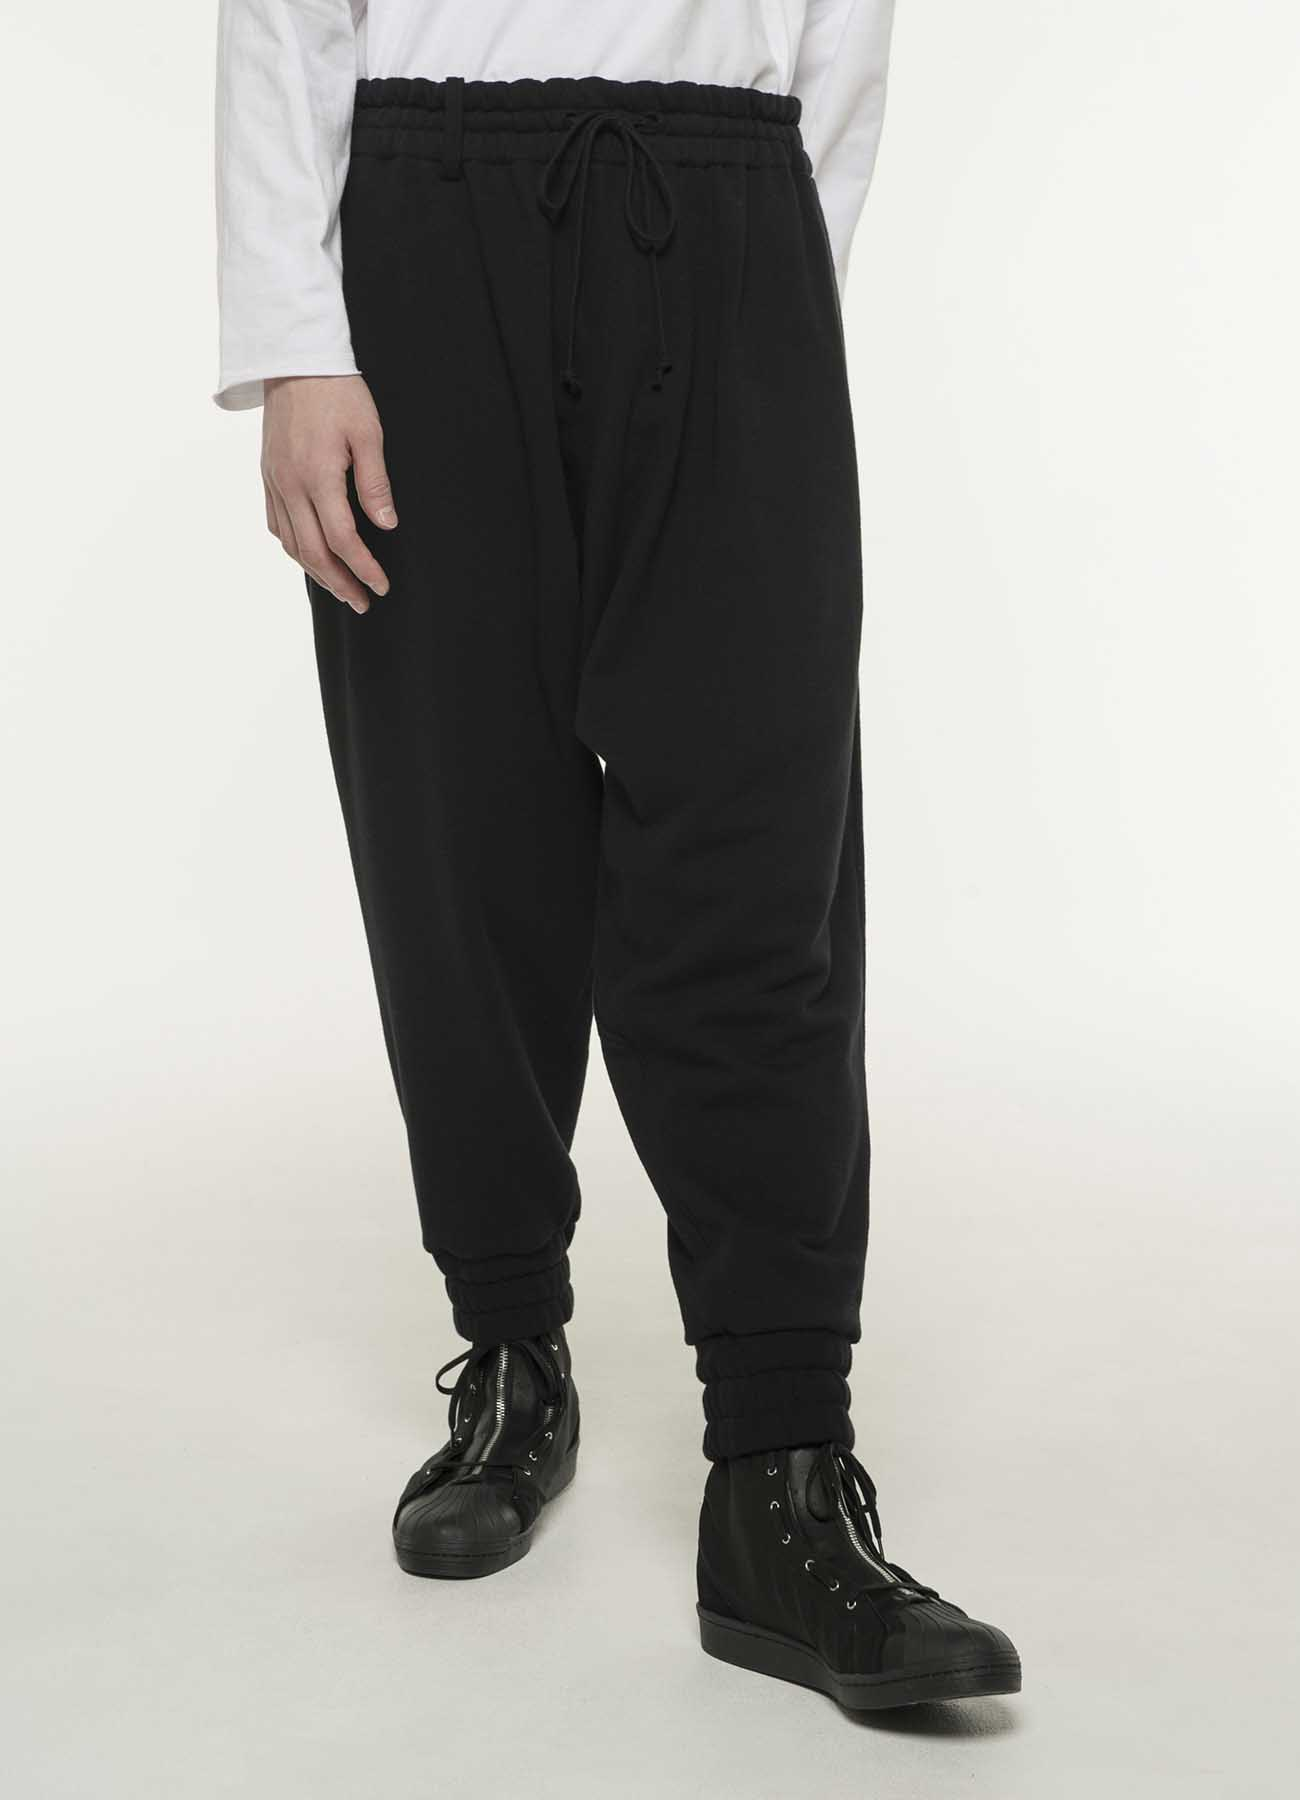 French Terry Stitch Work Sarrouel Rib Pants